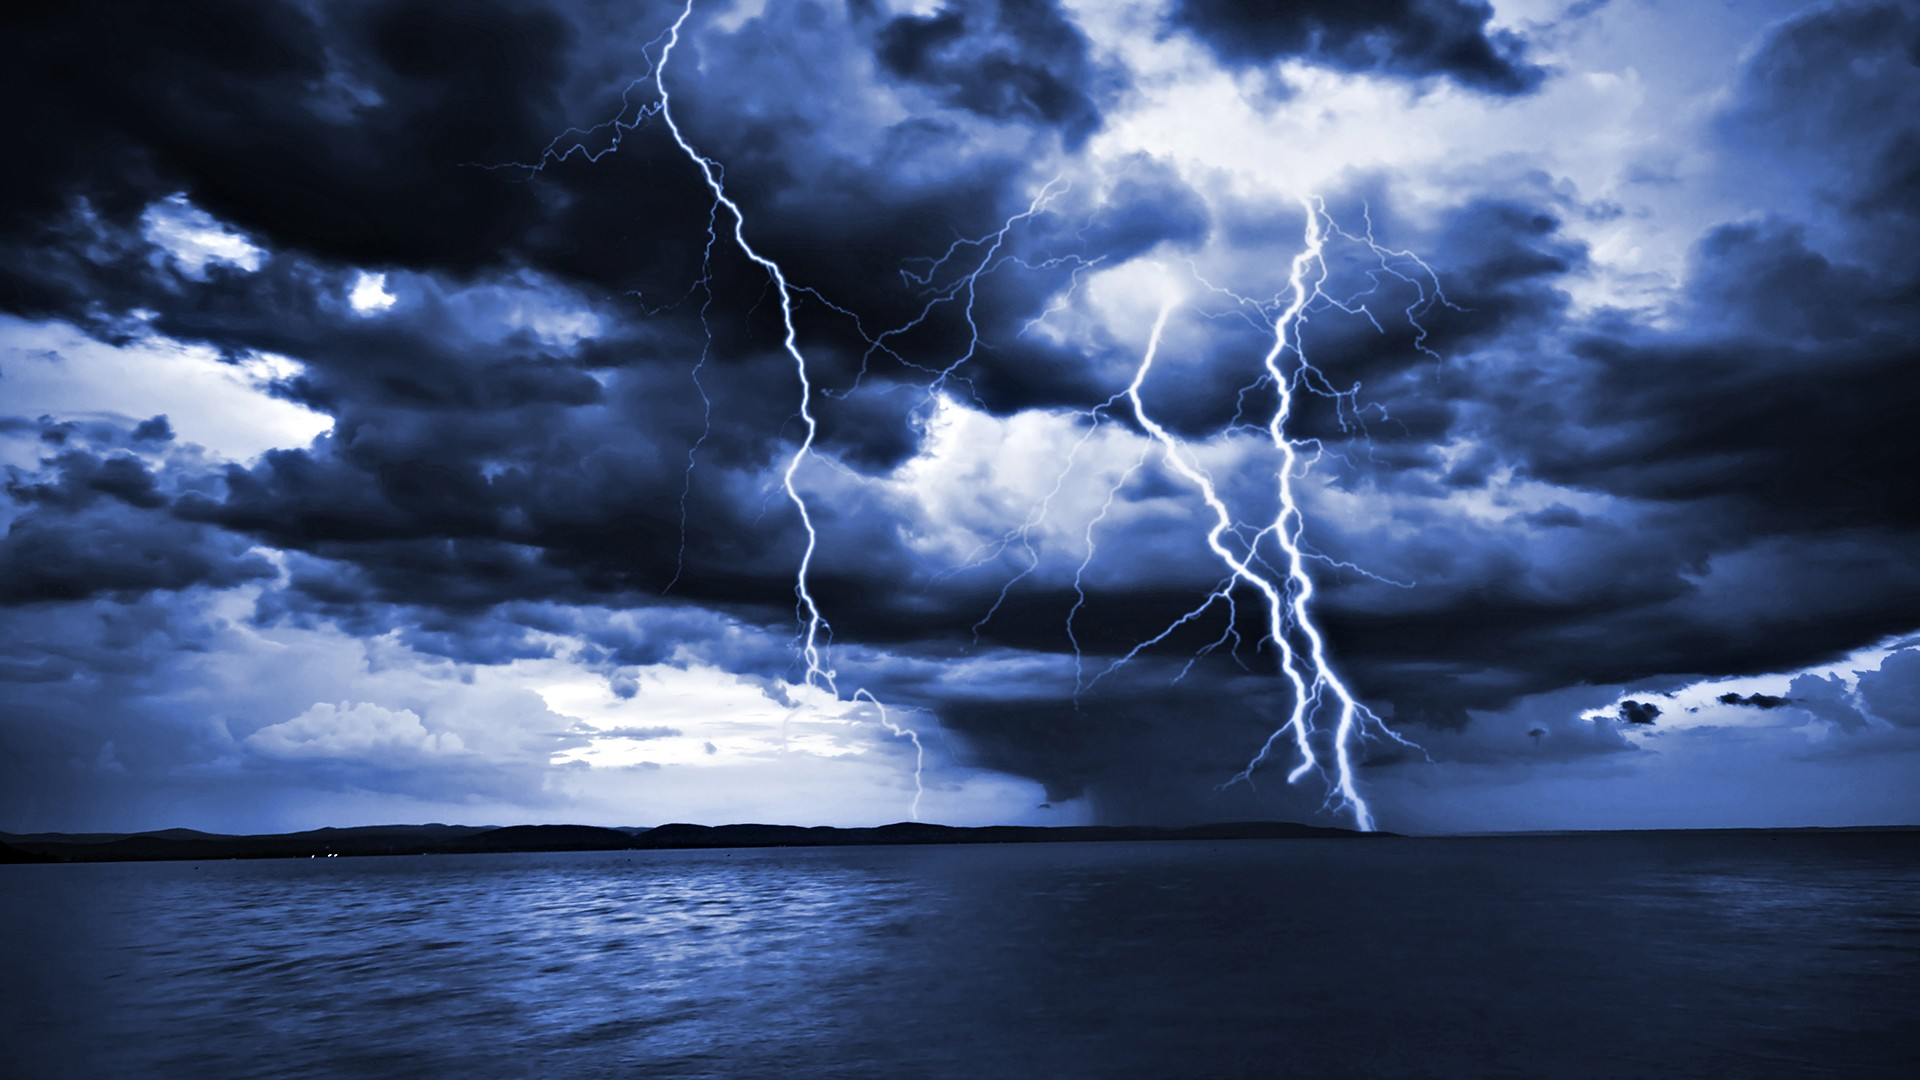 33 Best HD Thunderstorm Wallpapers feelgrPH 1920x1080